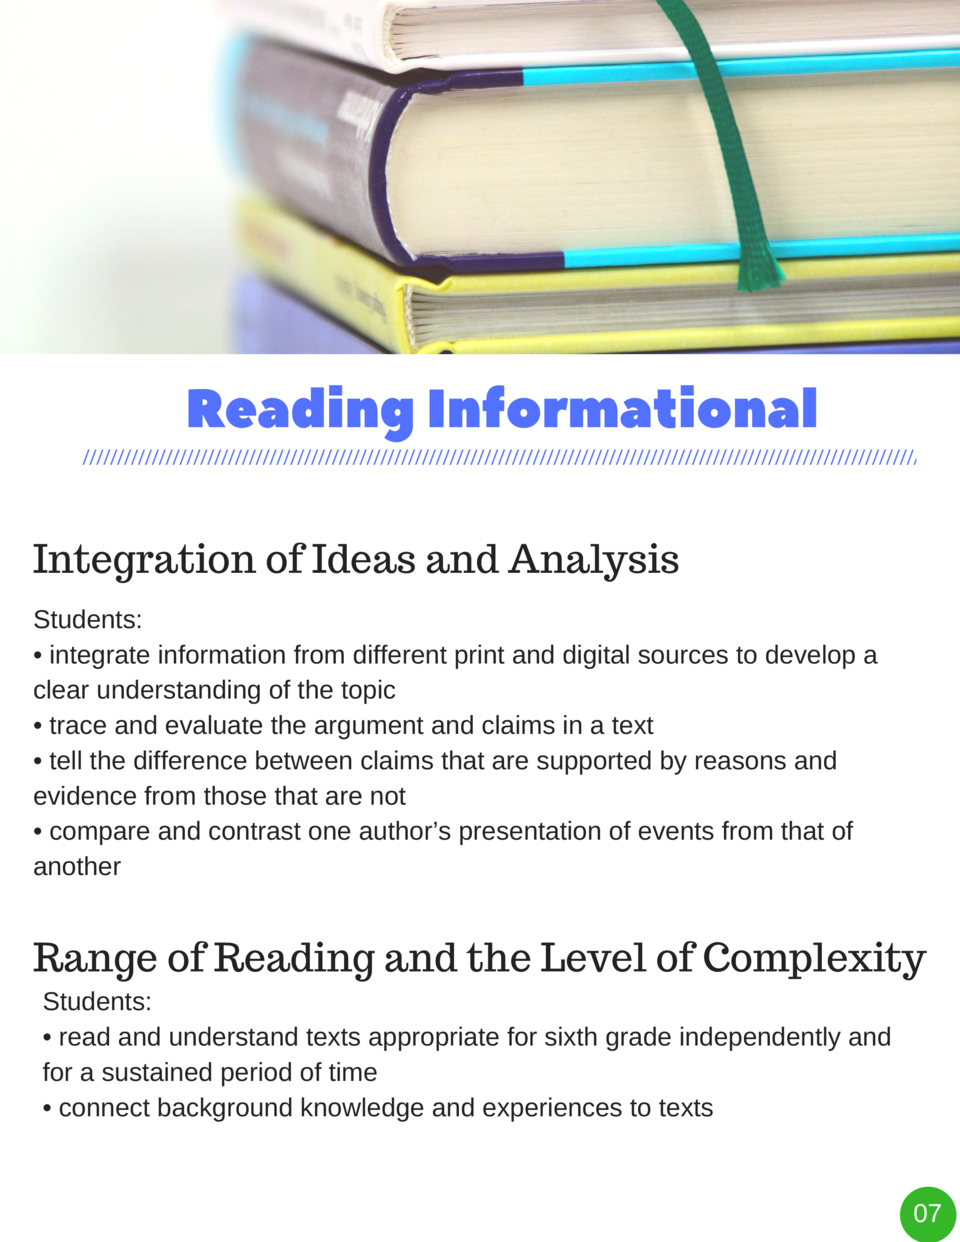 Reading   Informational Integration of Ideas and Analysis Students      integrate information from different print and dig...